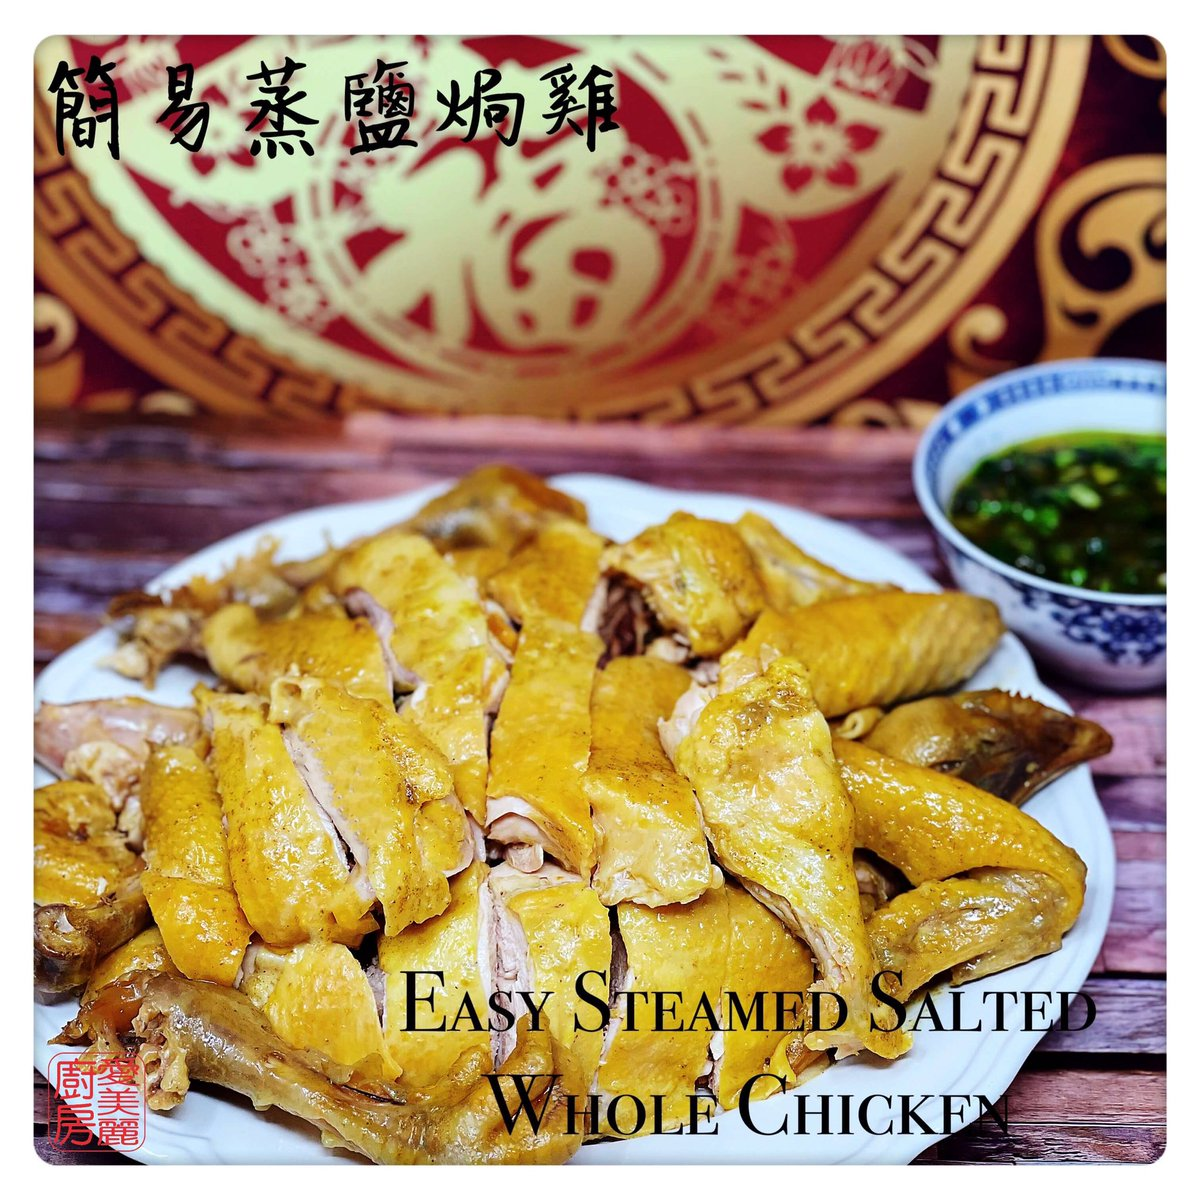 Easy Steamed Salted Whole Chicken 簡易蒸鹽焗雞. Steaming chicken is easy & less likely to be over cooked; giving you a delicious, moist & presentable chicken. 🐔🤤    #auntieemilyskitchen #homemade #homecooking #foodie #goodeats  #chinesefood #cny #chicken